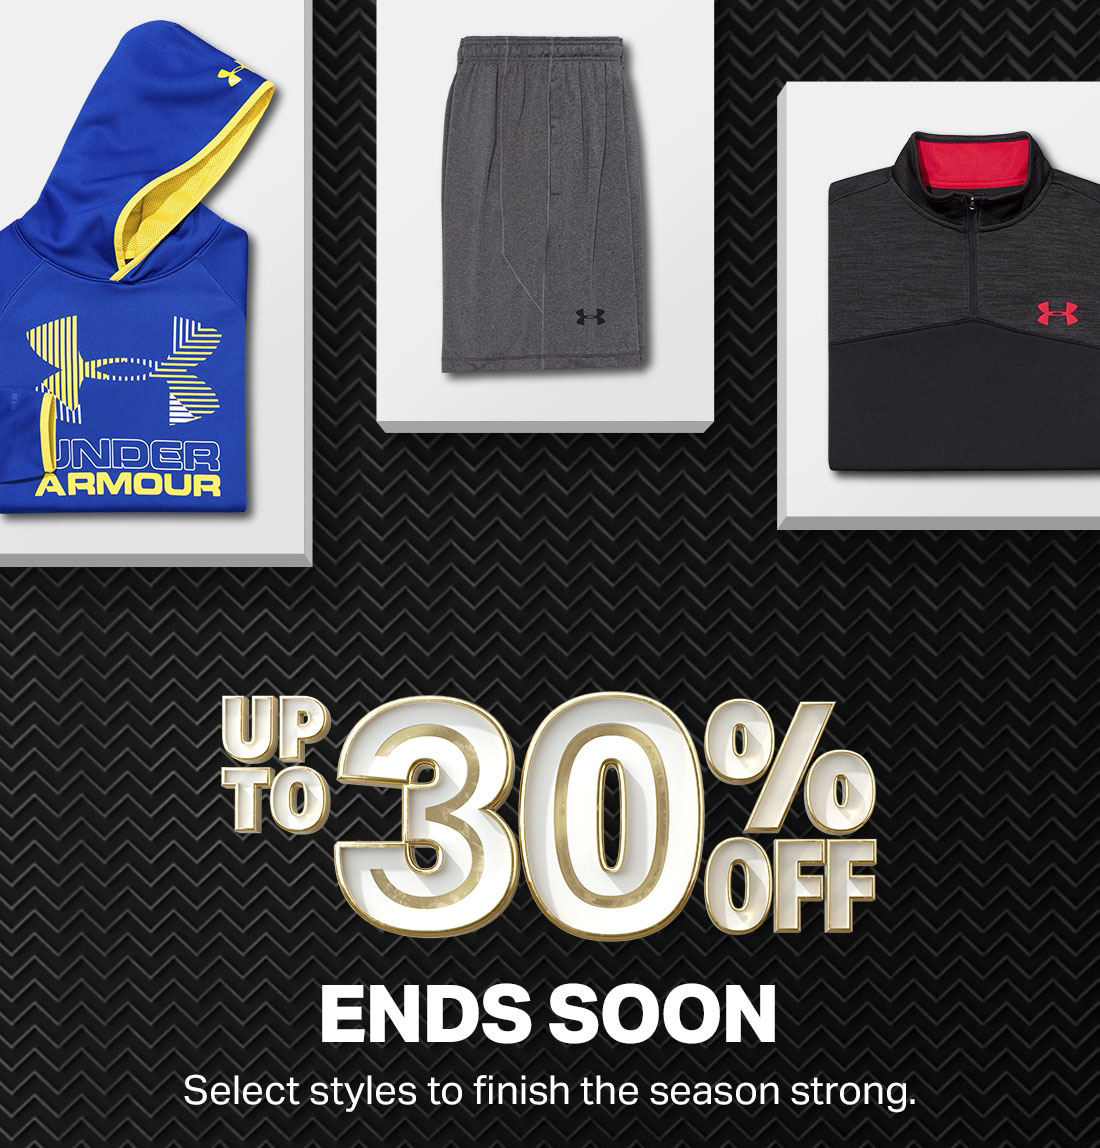 UP TO 30% OFF - ENDS SOON - Select styles to finish the season strong.